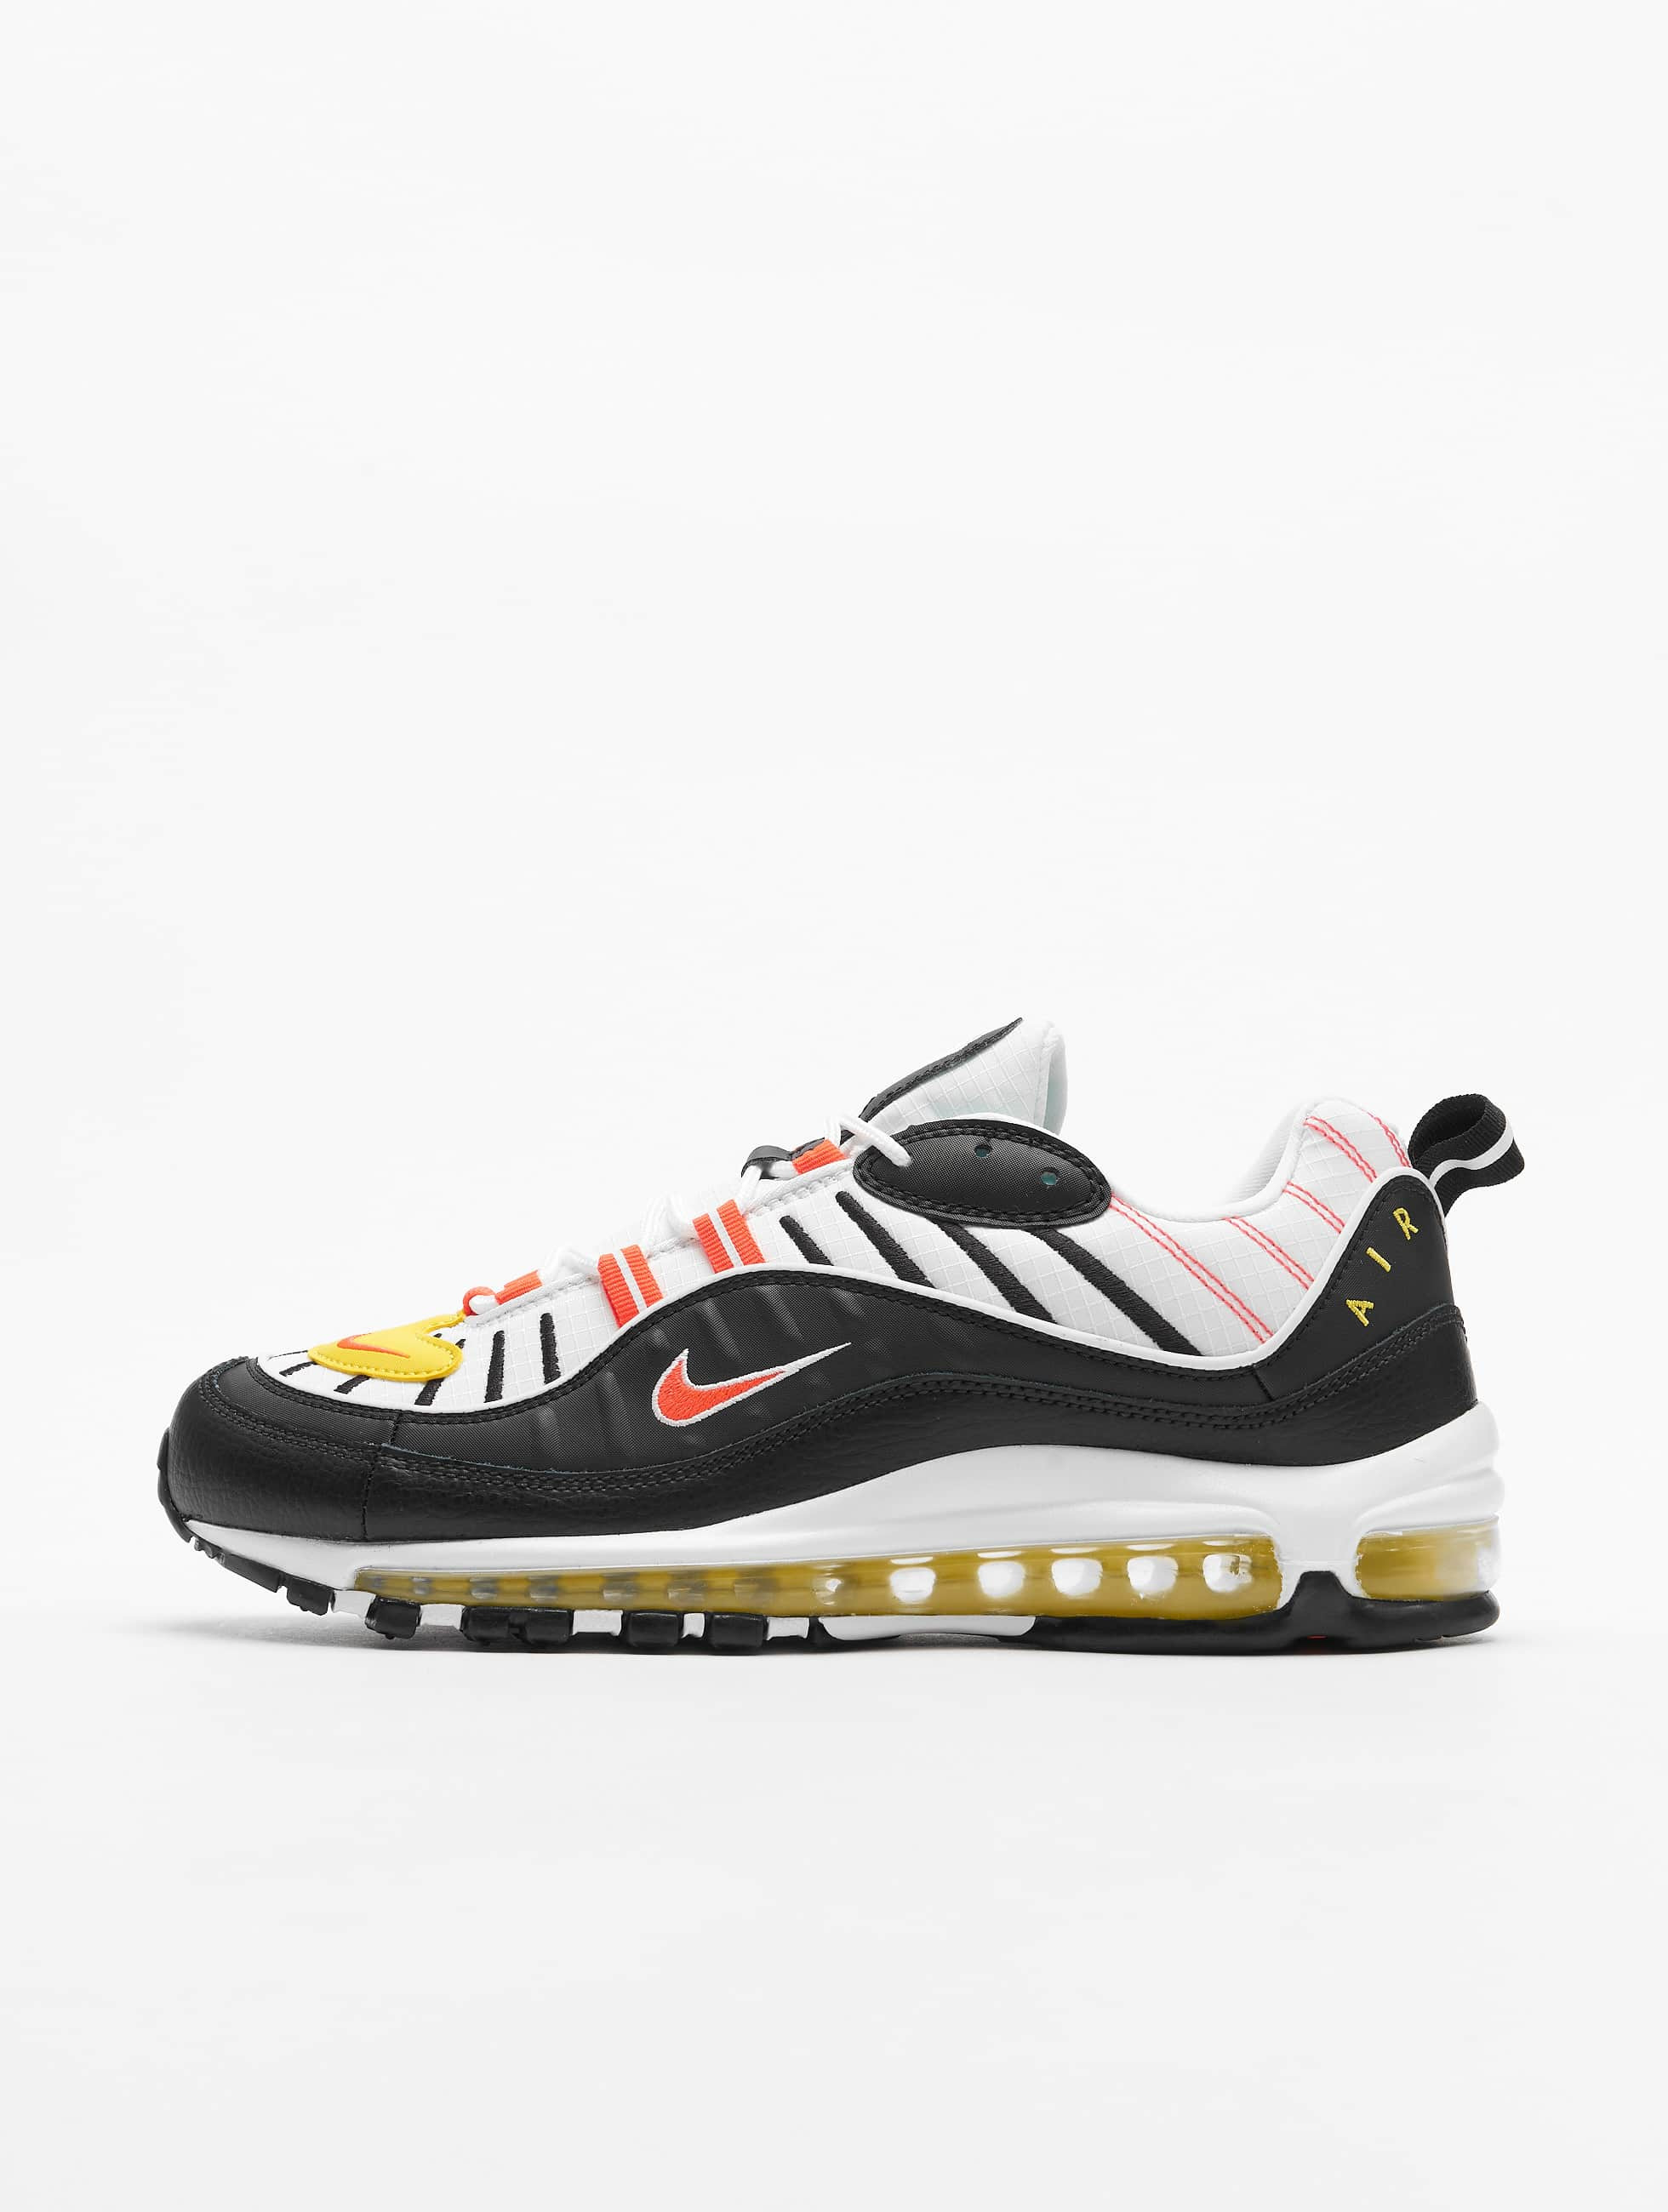 Nike Air Max 98 Sneakers BlackBright CrimsonWhiteChrome Yellow